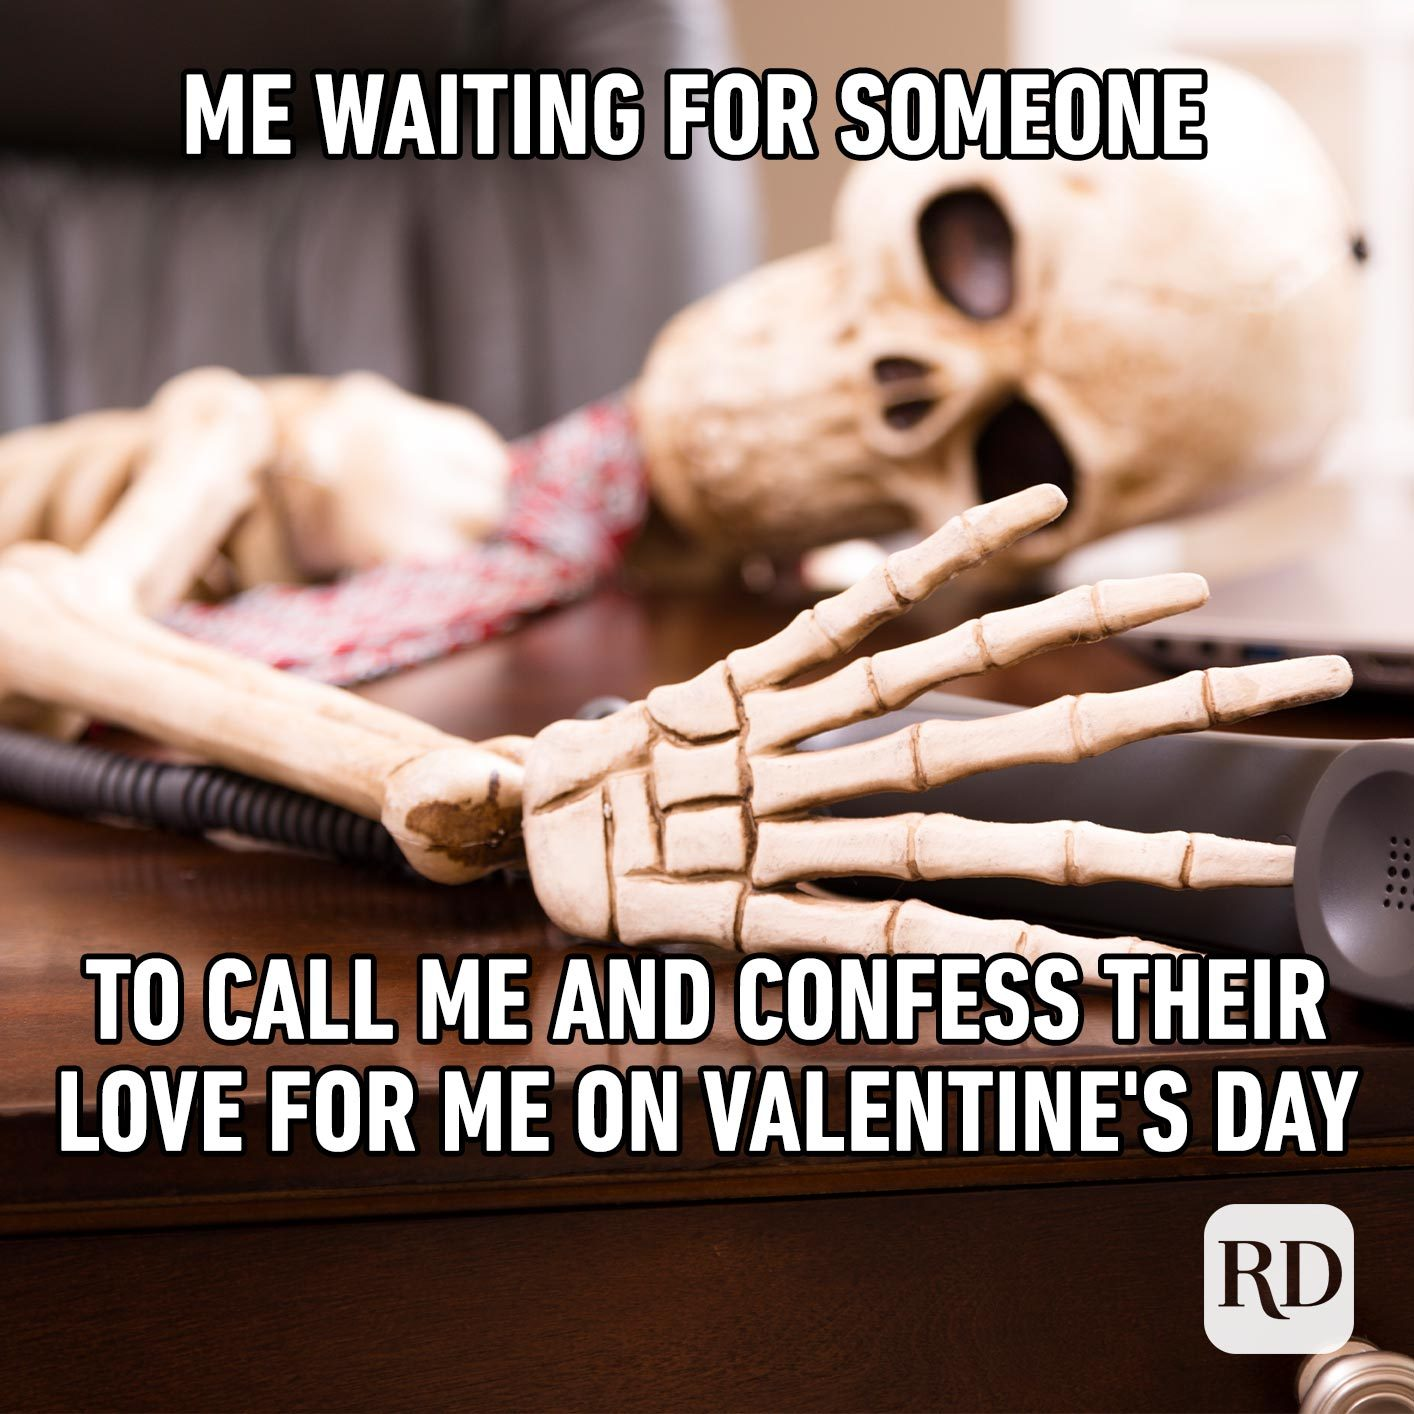 Skeleton on phone. Meme text: Me waiting for someone to call me and confess their love for me on Valentine's Day.